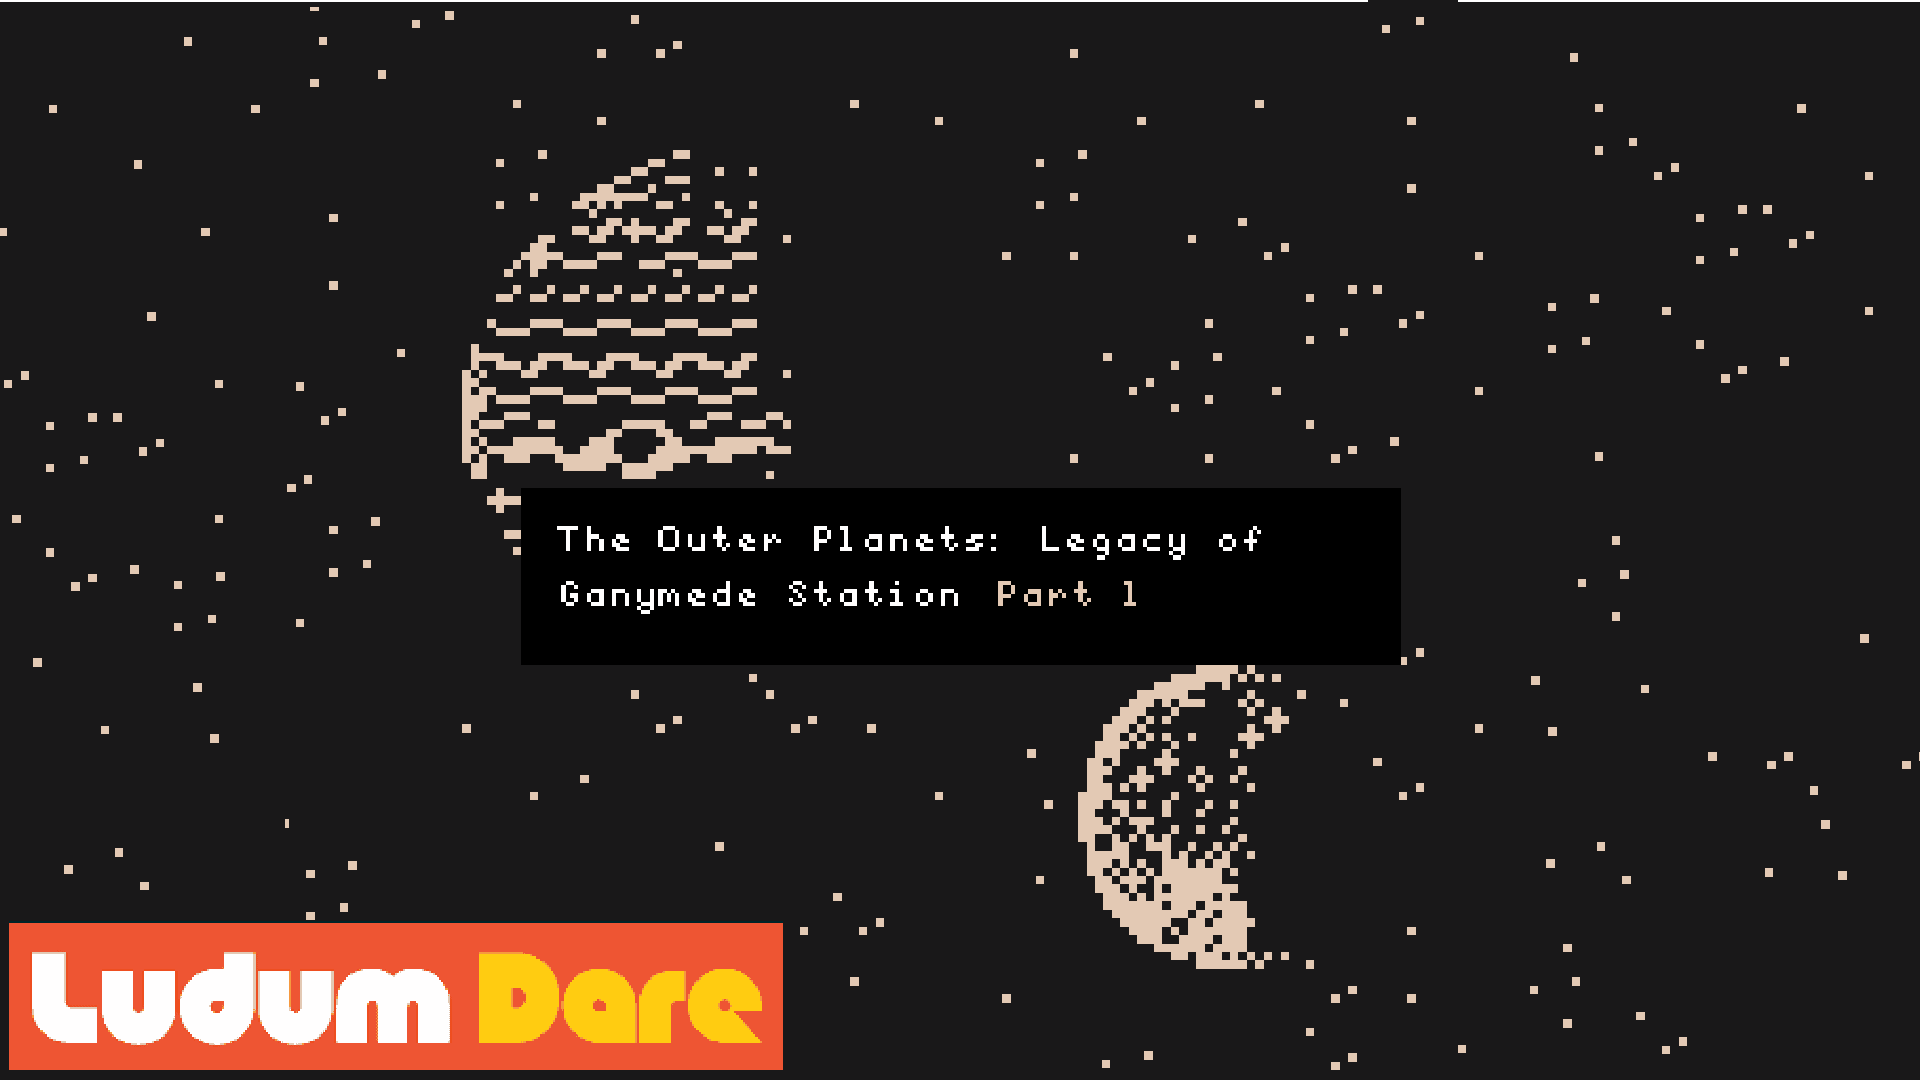 Pixel art image of Jupiter and it's moon Ganymede with title text The Outer Planets: Legacy of Ganymede Station - Part 1, by Darren Kearney